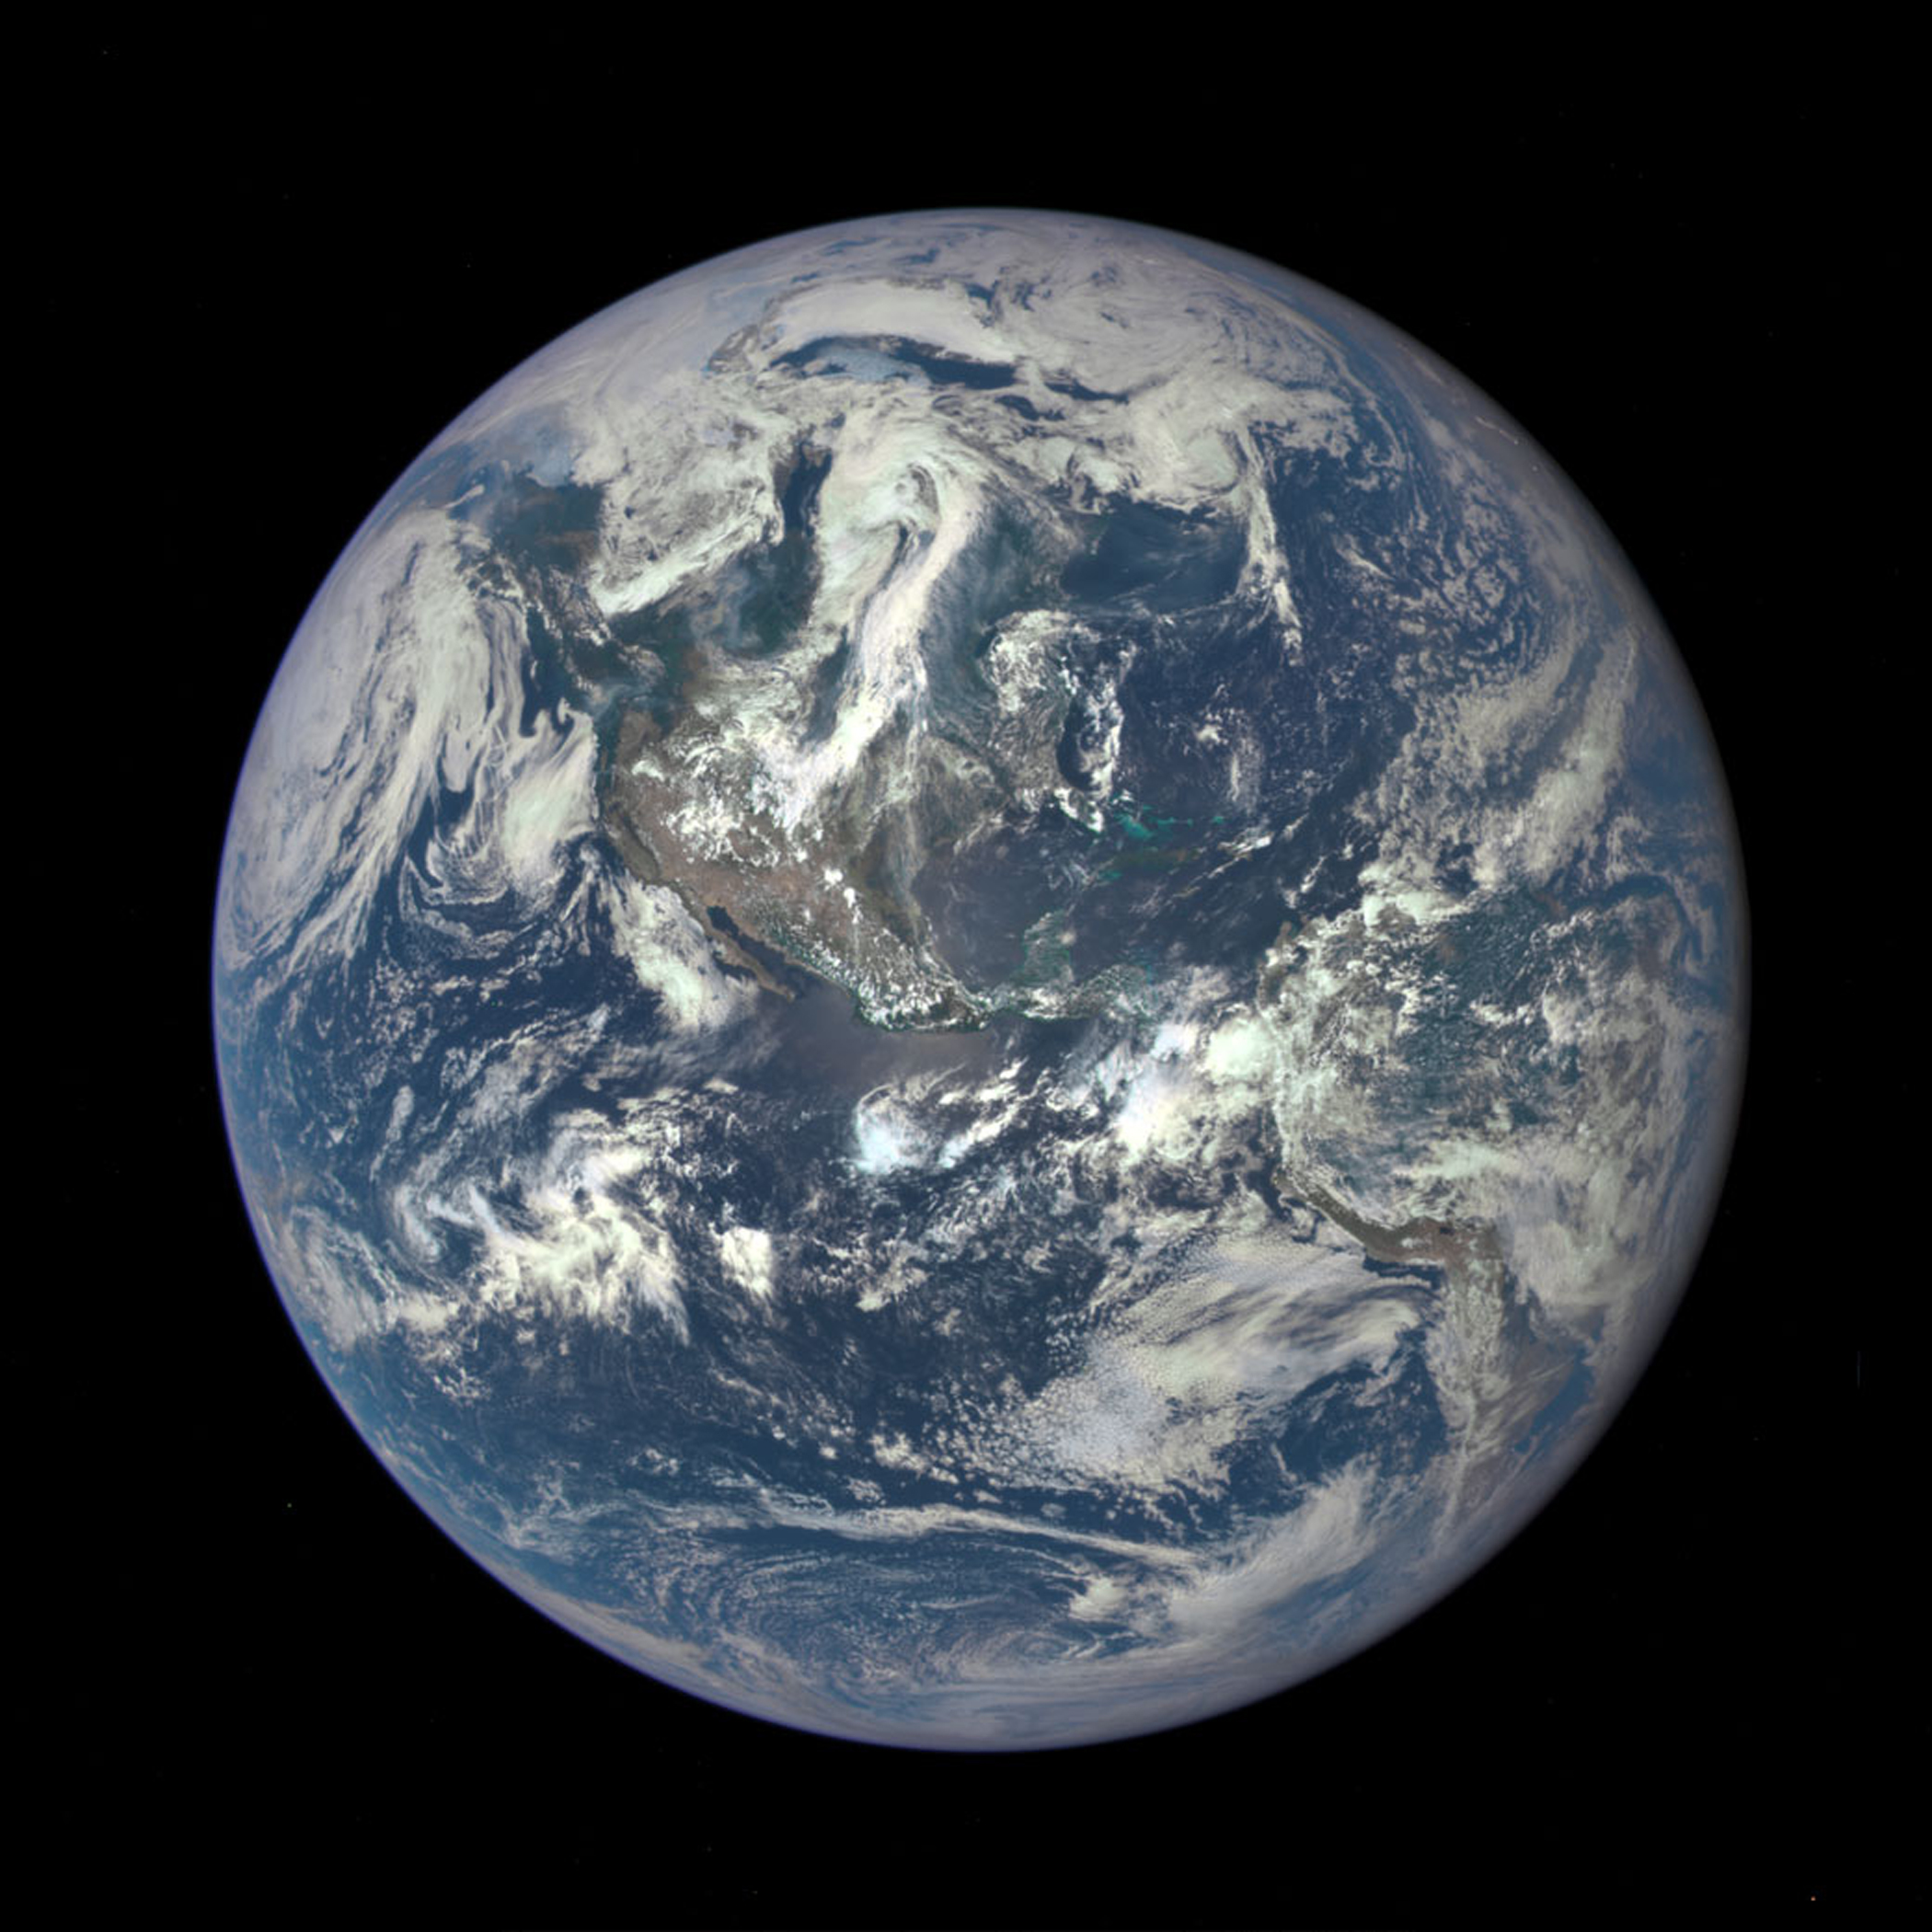 A NASA camera on the Deep Space Climate Observatory (DSCOVR) satellite captures the entire sunlit side of Earth from one million miles away on July 6, 2015.